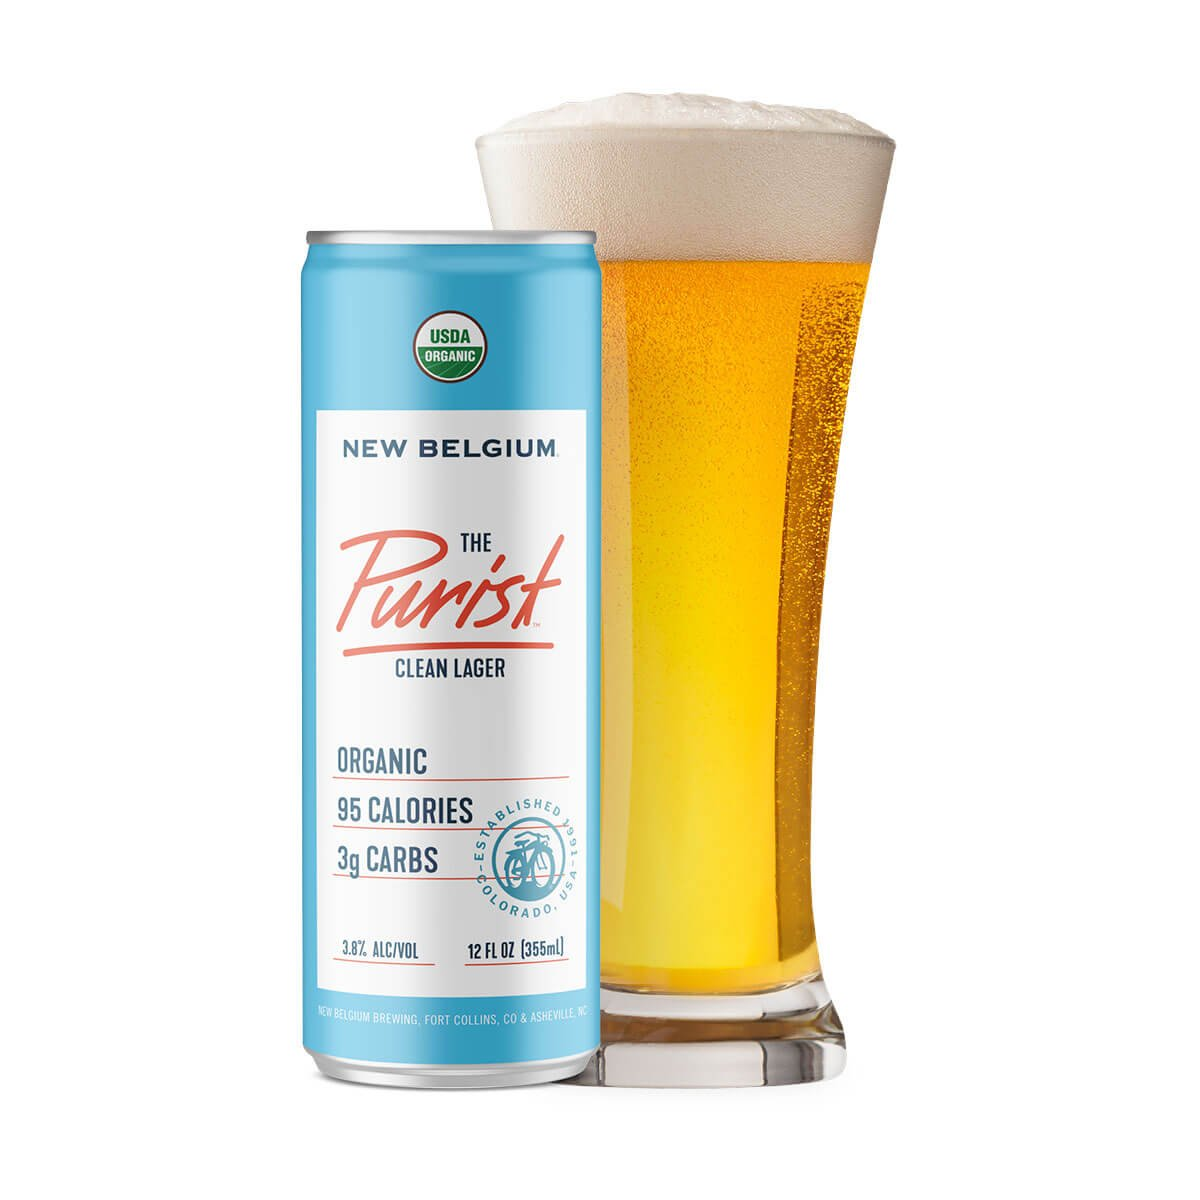 12 oz. can and glass of The Purist Clean Lager by New Belgium Brewing Company